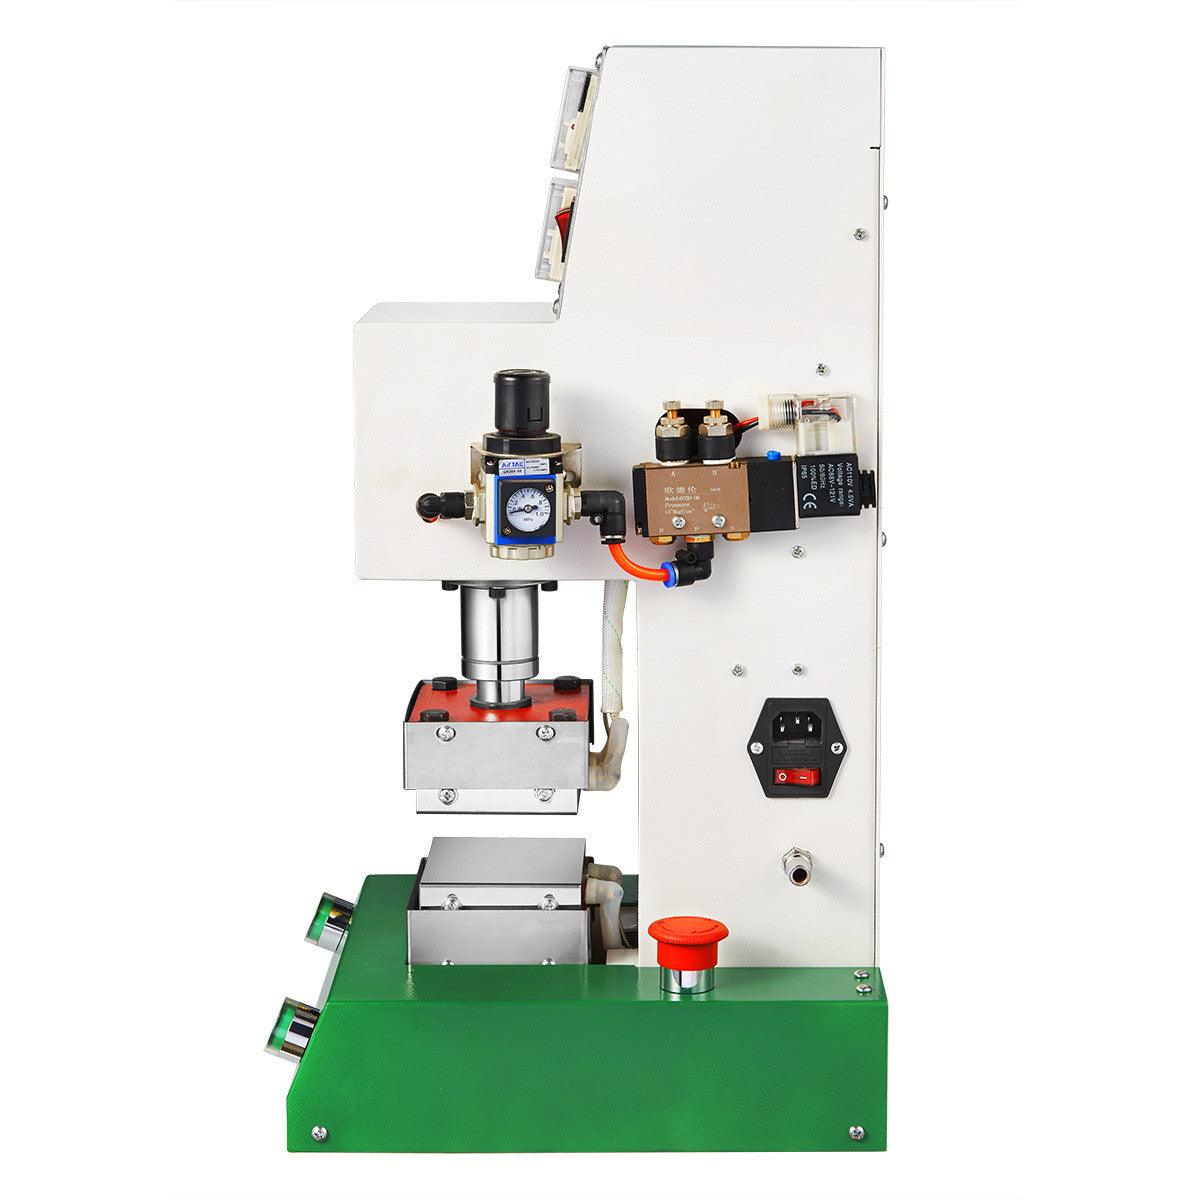 Rosineer RNR-PV2 Pneumatic Rosin Press Machine  - Food Grade Stainless Steel Cover for Heat Plates